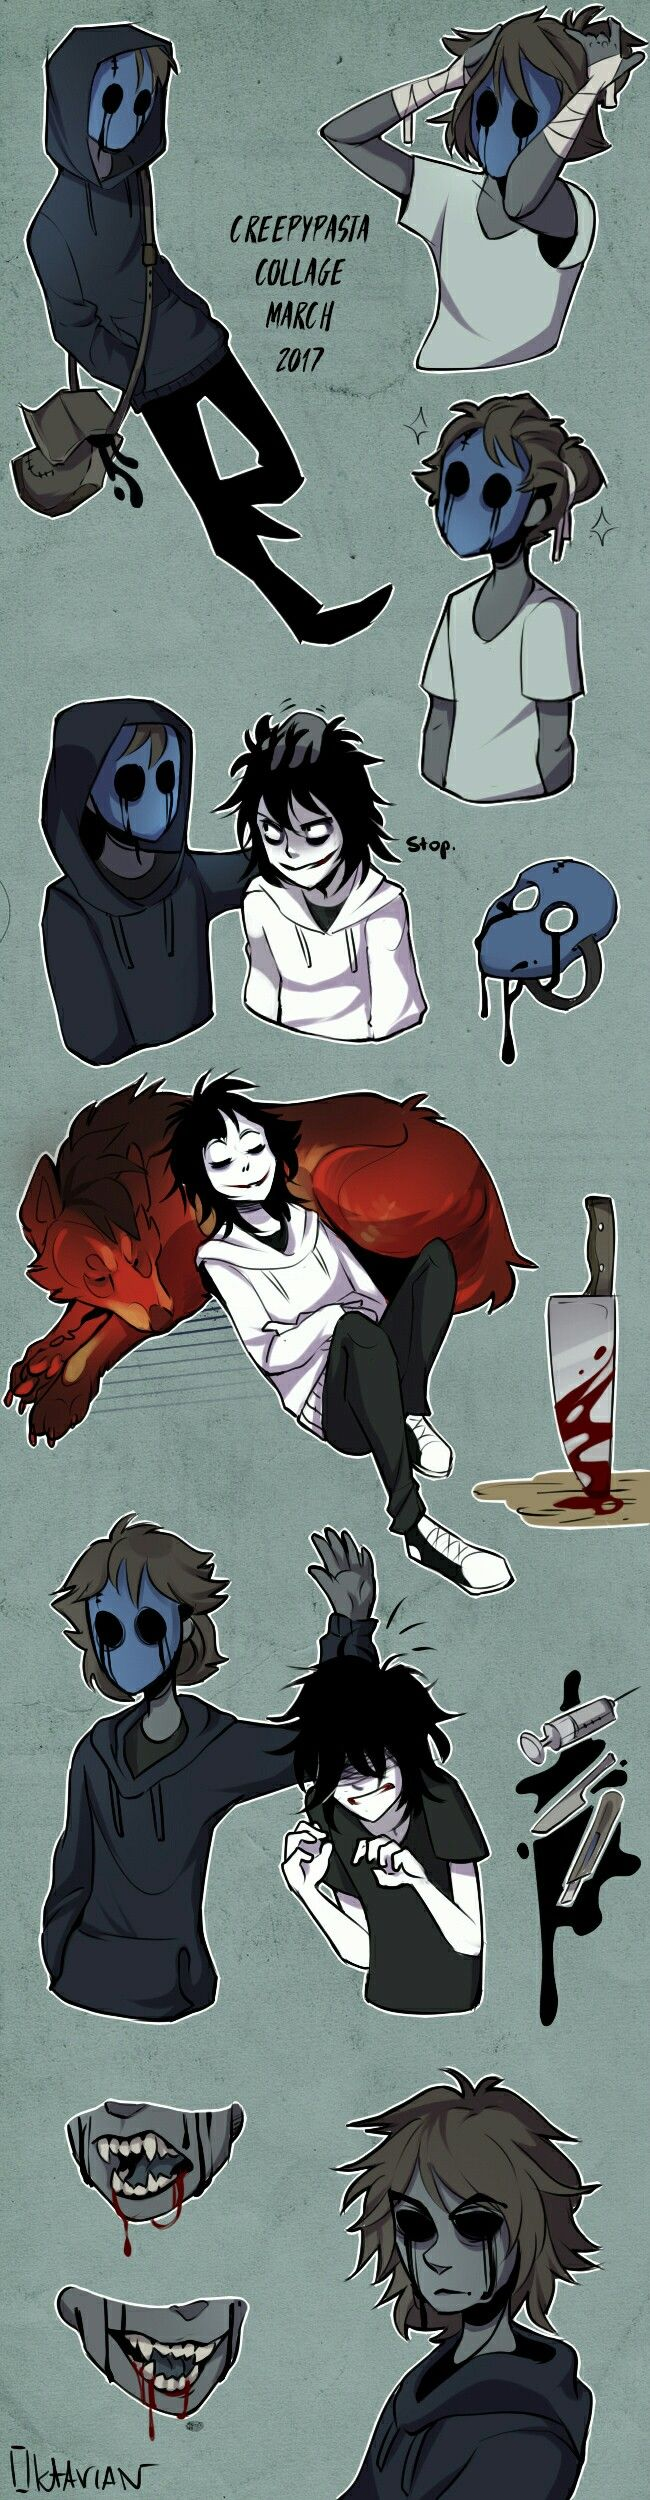 Creepypasta collage March '17 by Oktavian on DeviantArt